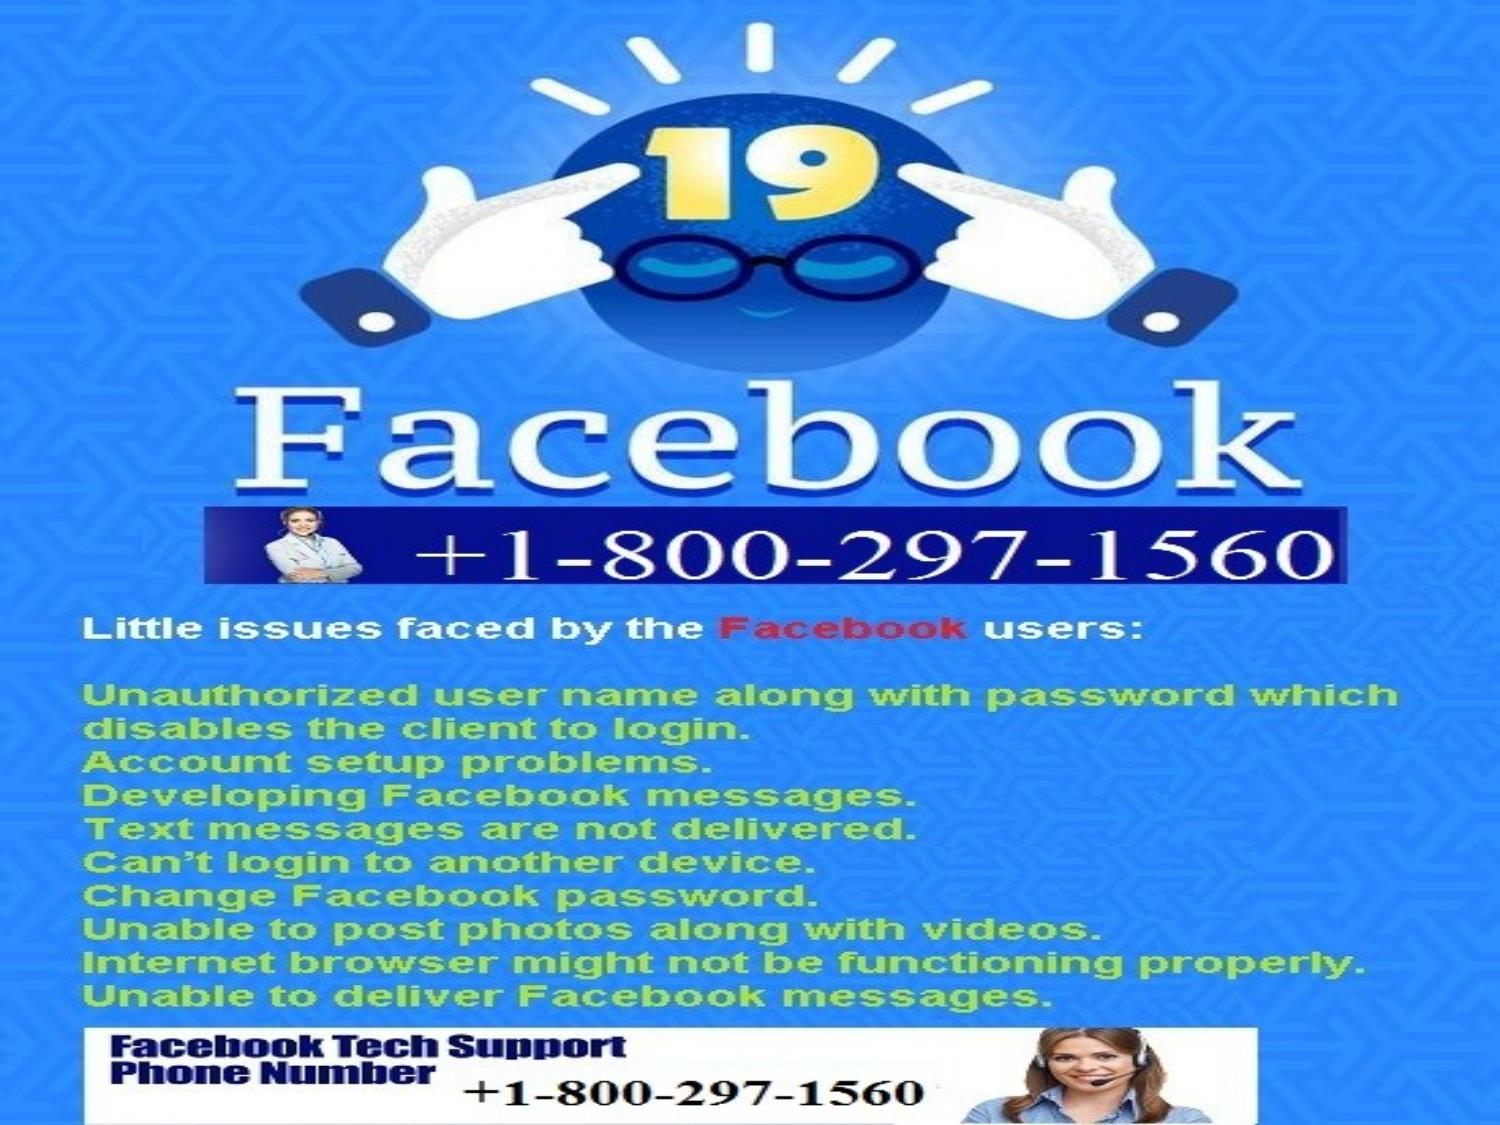 1-800-297-1560 facebook help center number for USA and